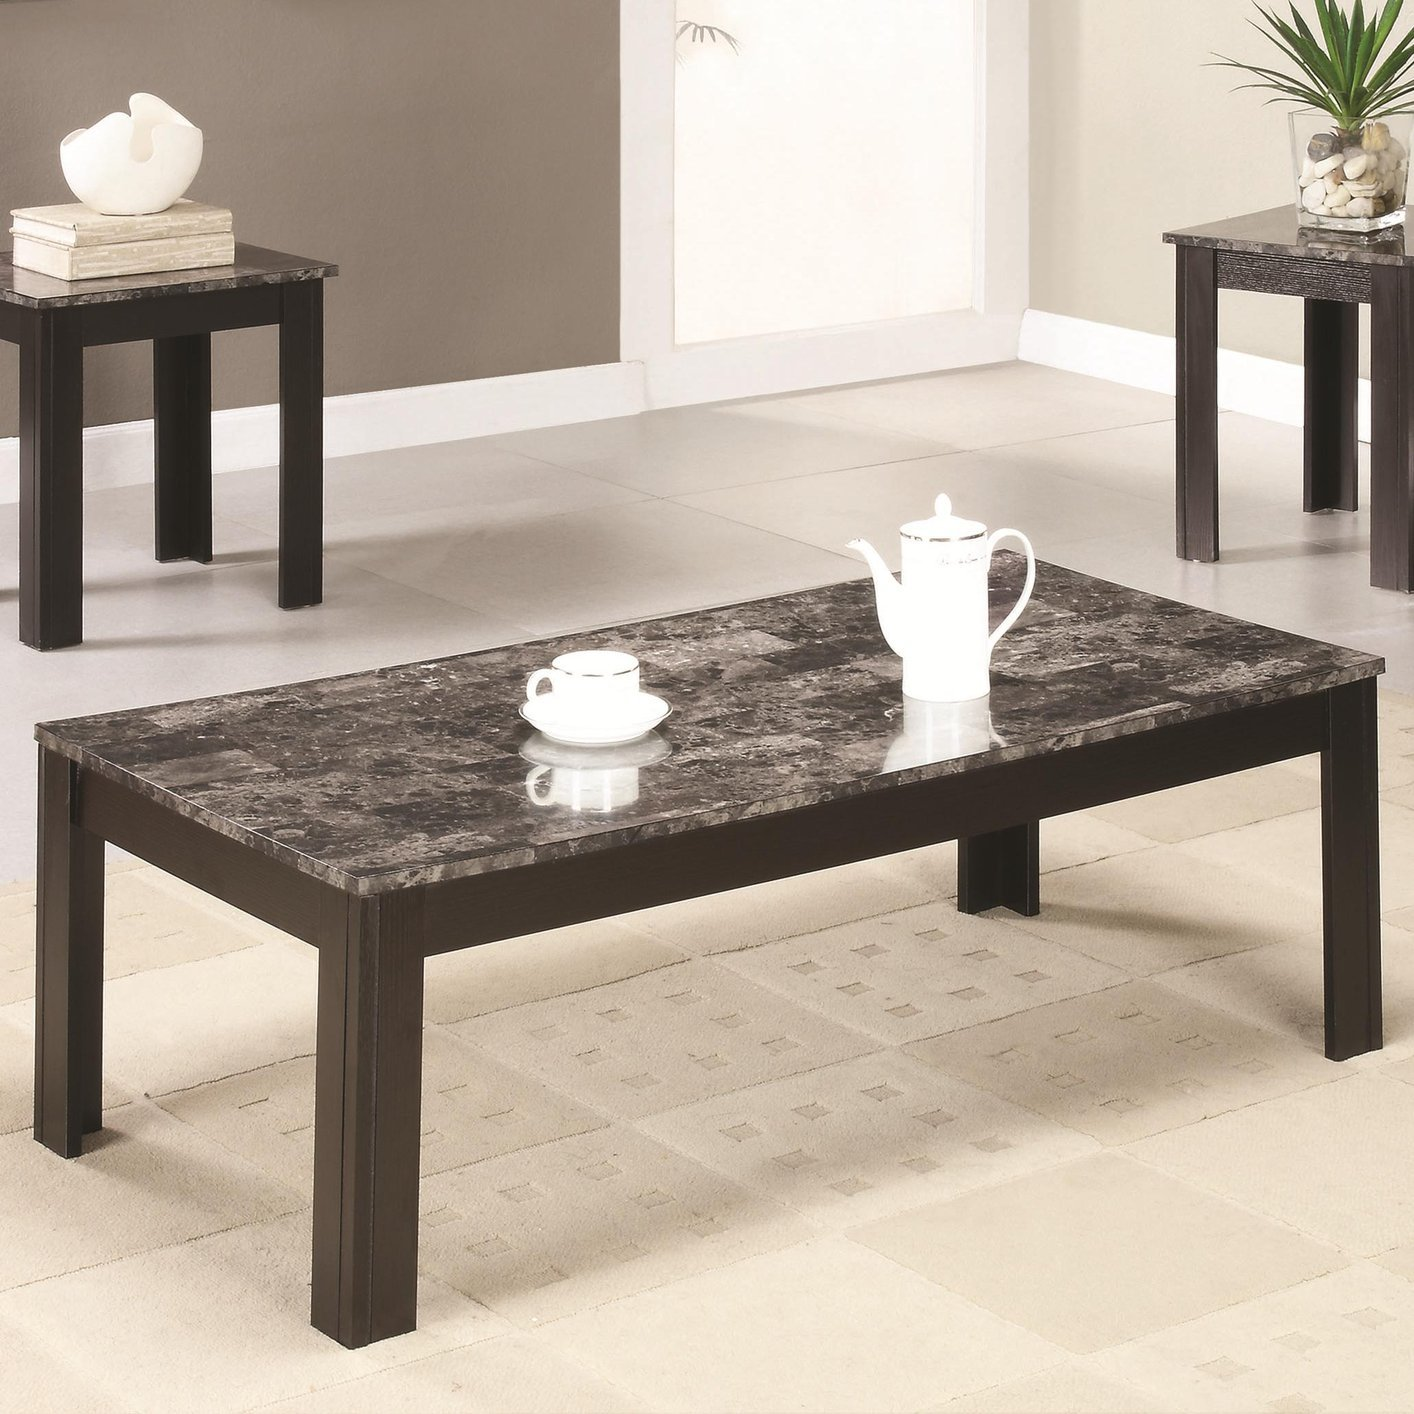 Marble Coffee Table Online: Black Marble Coffee Table Set